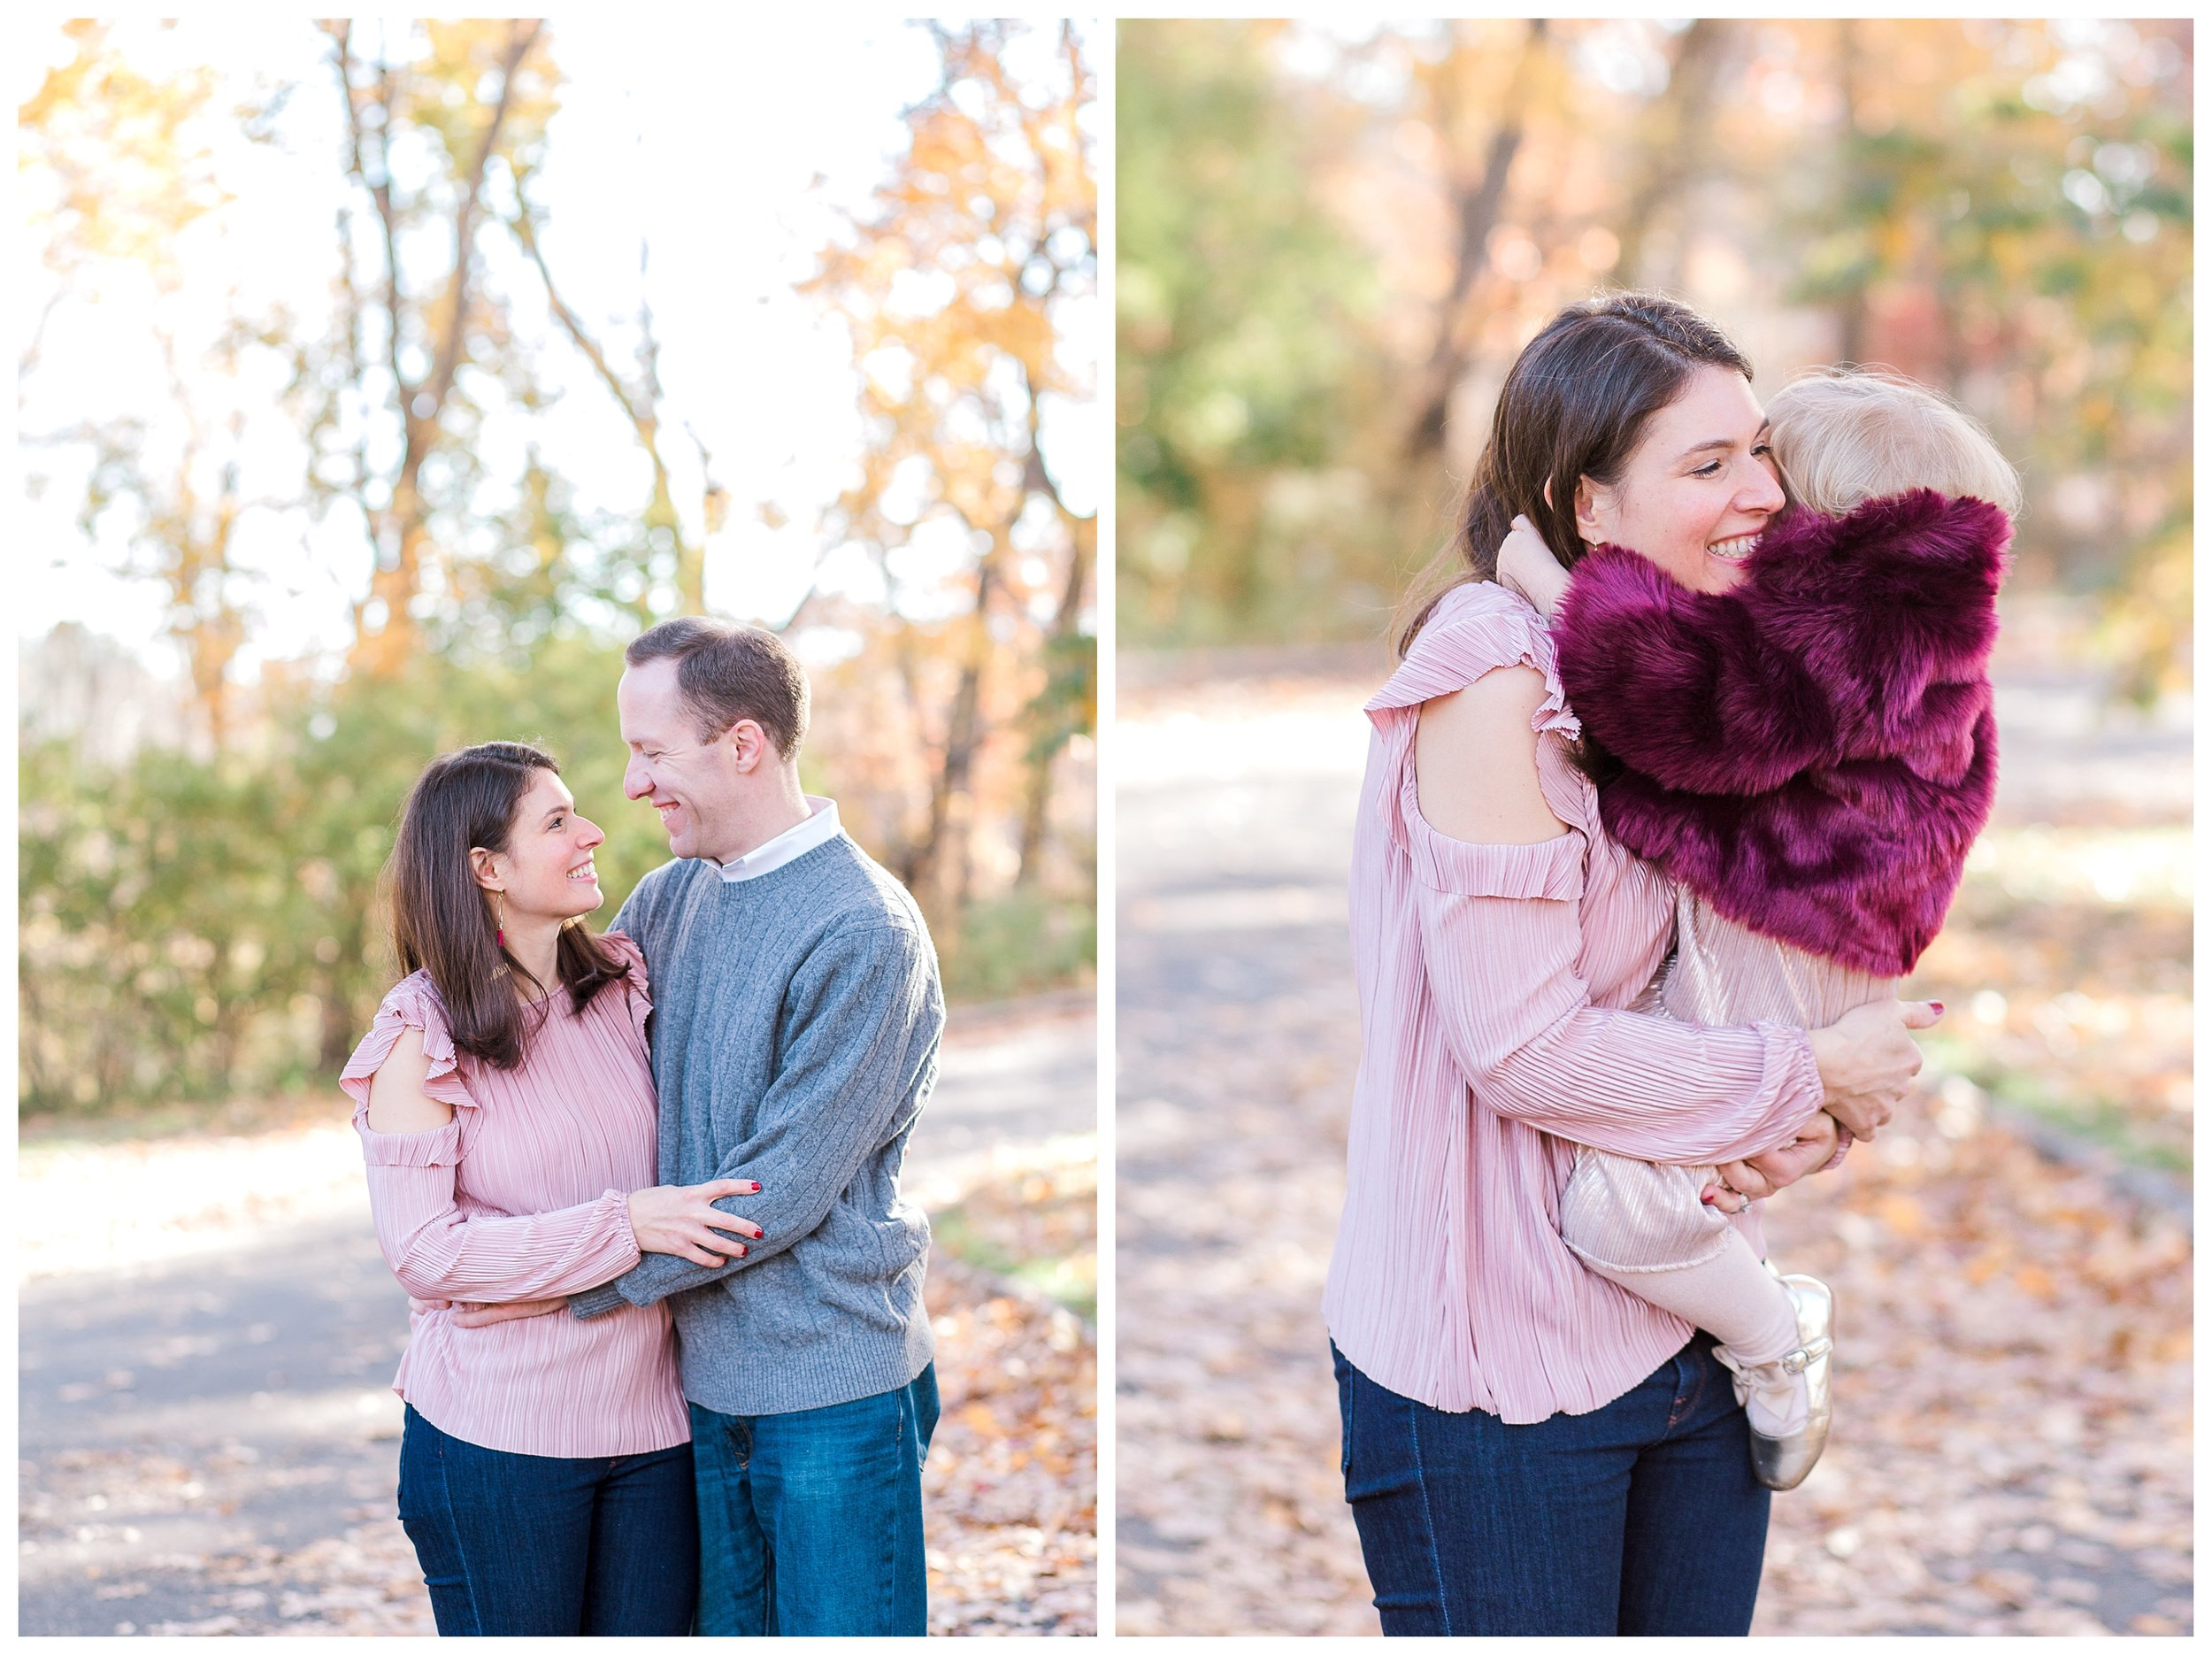 wellesley_fall_family_photographer_erica_pezente_photo (7).jpg